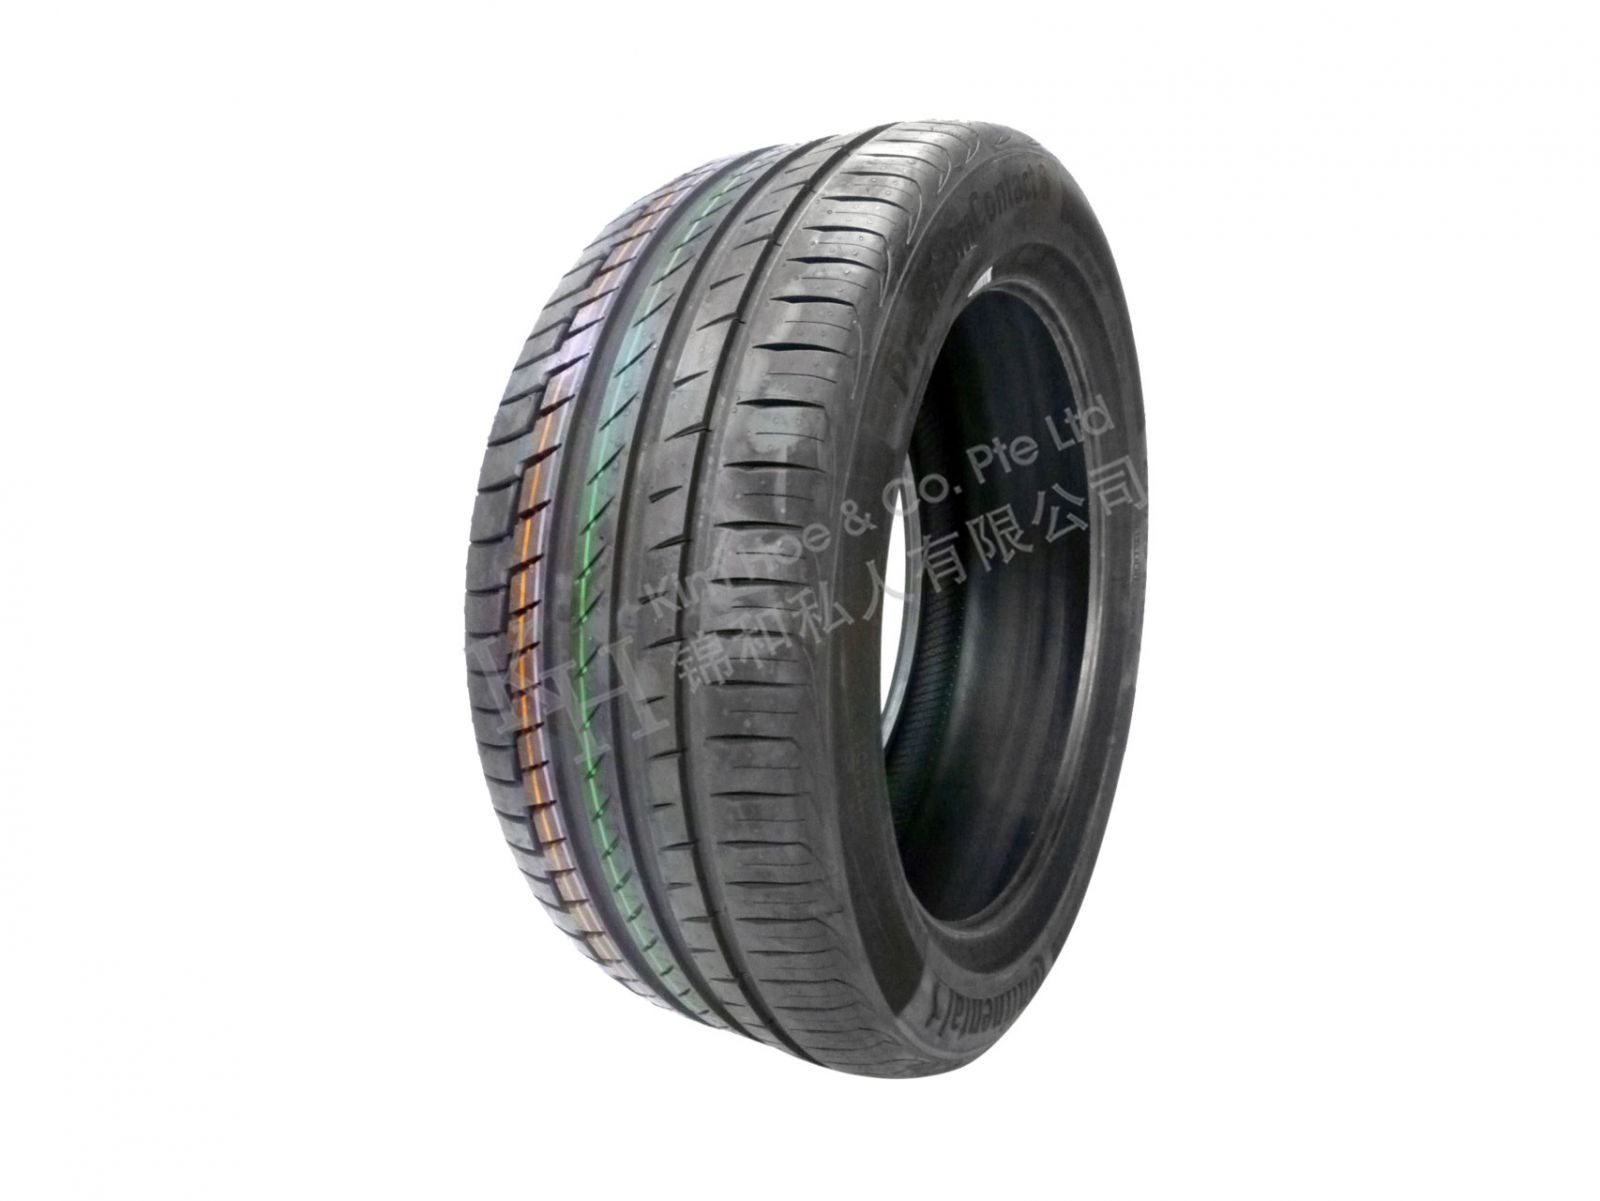 Continental ContiPremiumContact 6 225/45/R18 Tyre